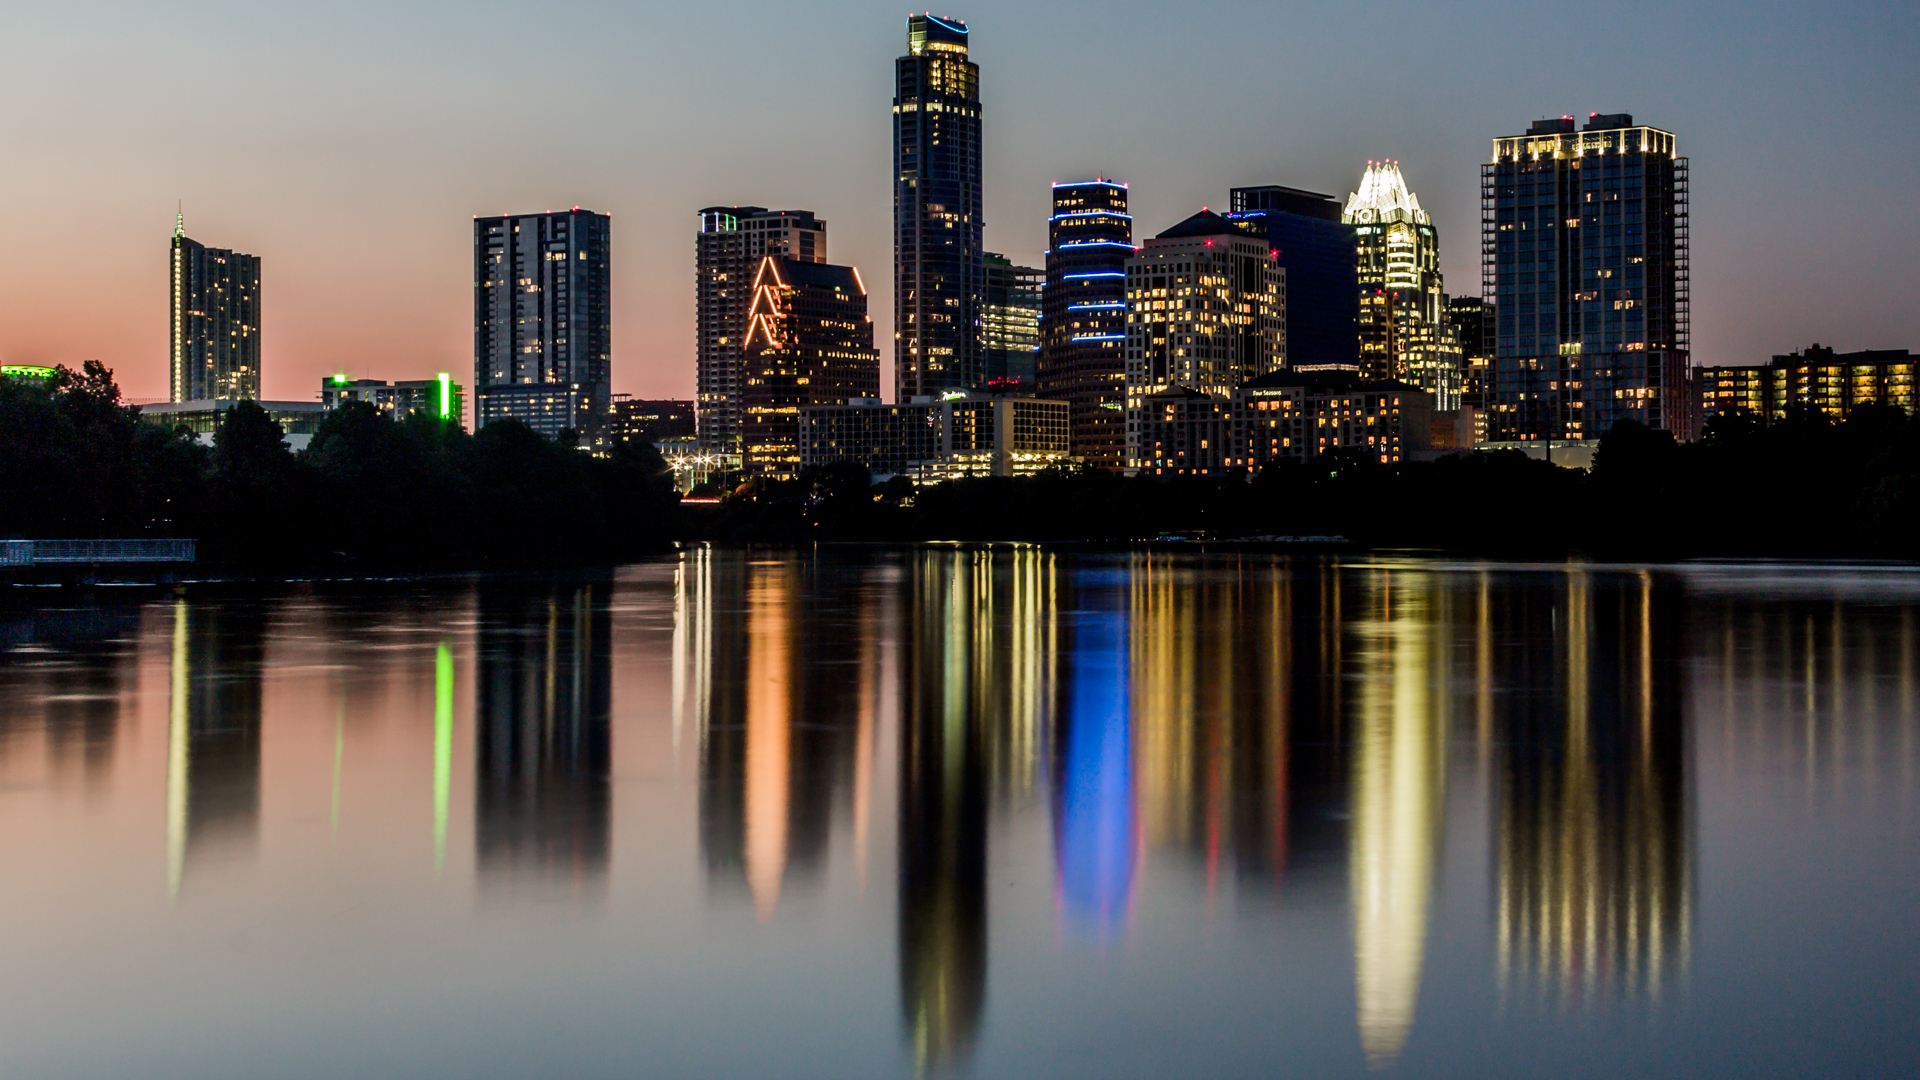 Austin_Evening_by_Argash.jpg